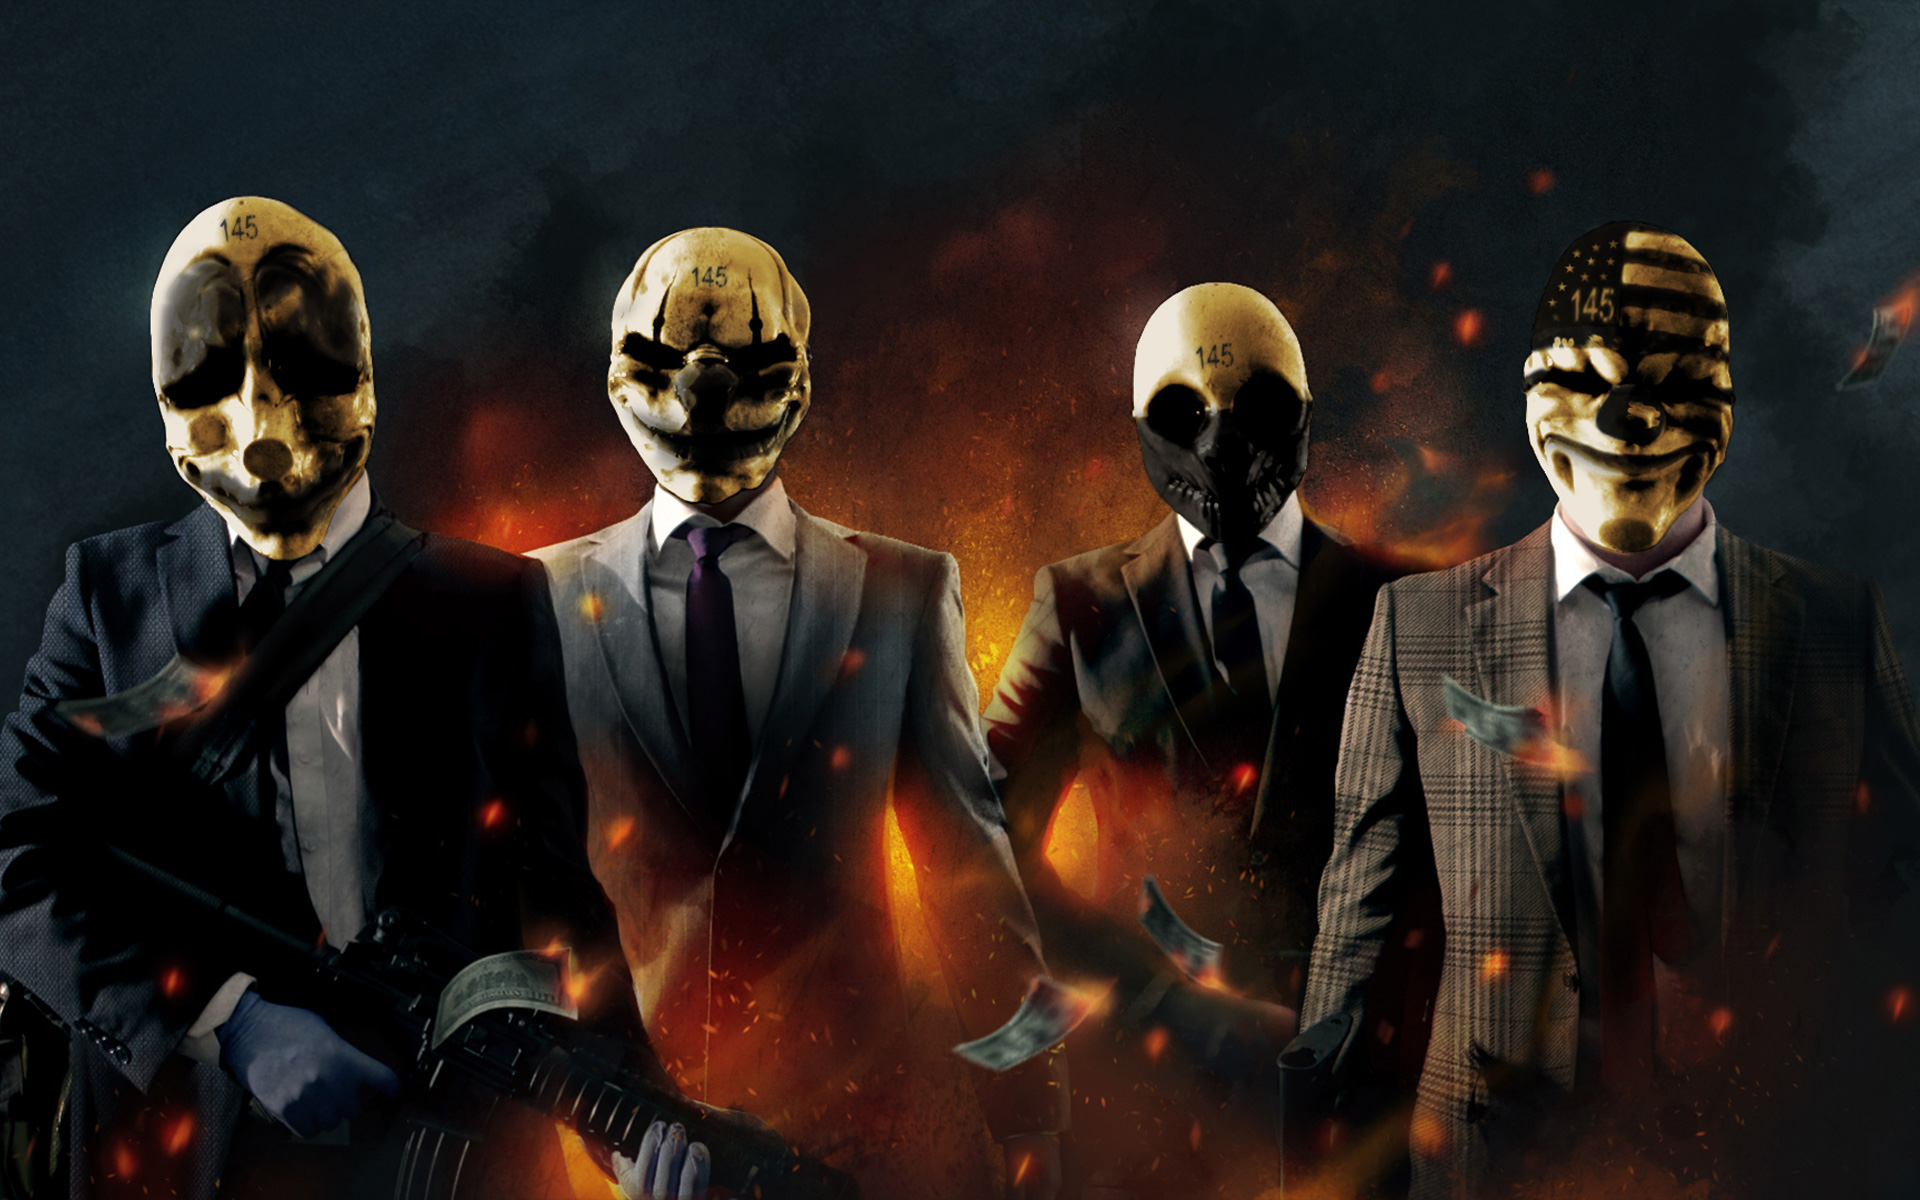 Free Payday: The Heist Wallpaper in 1920x1200